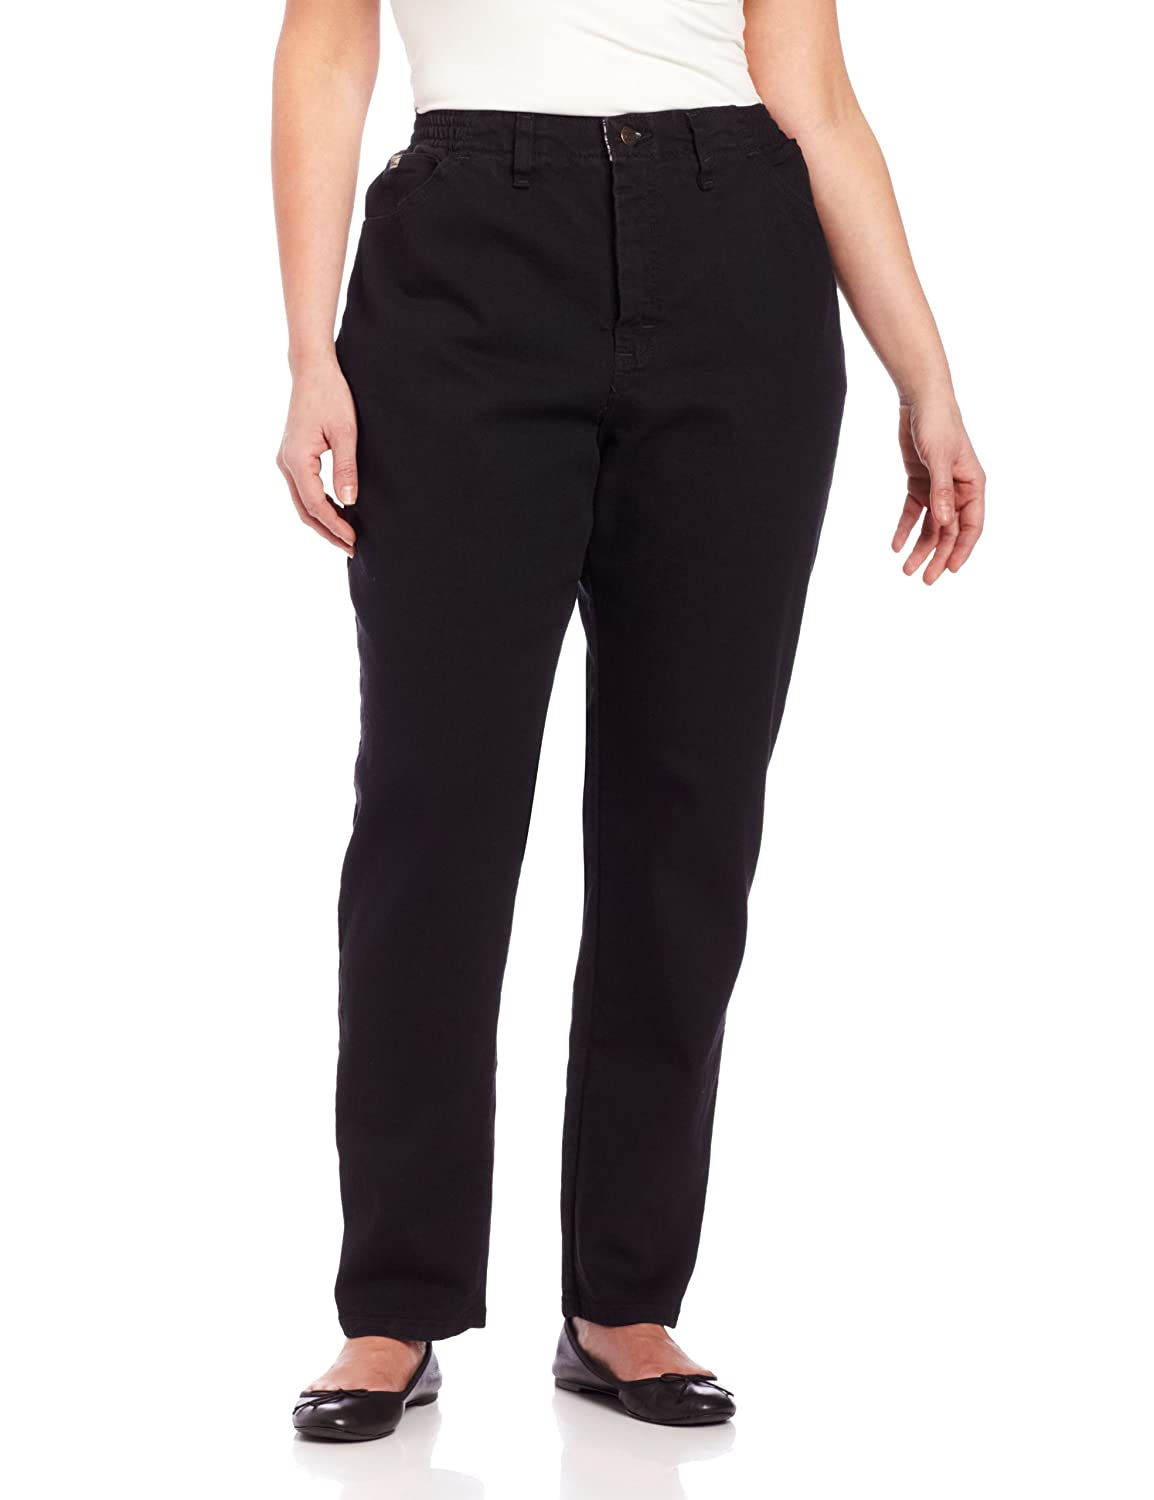 Lee womens plus-size Plus Size Relaxed-fit Elastic-waist Jean 3086144